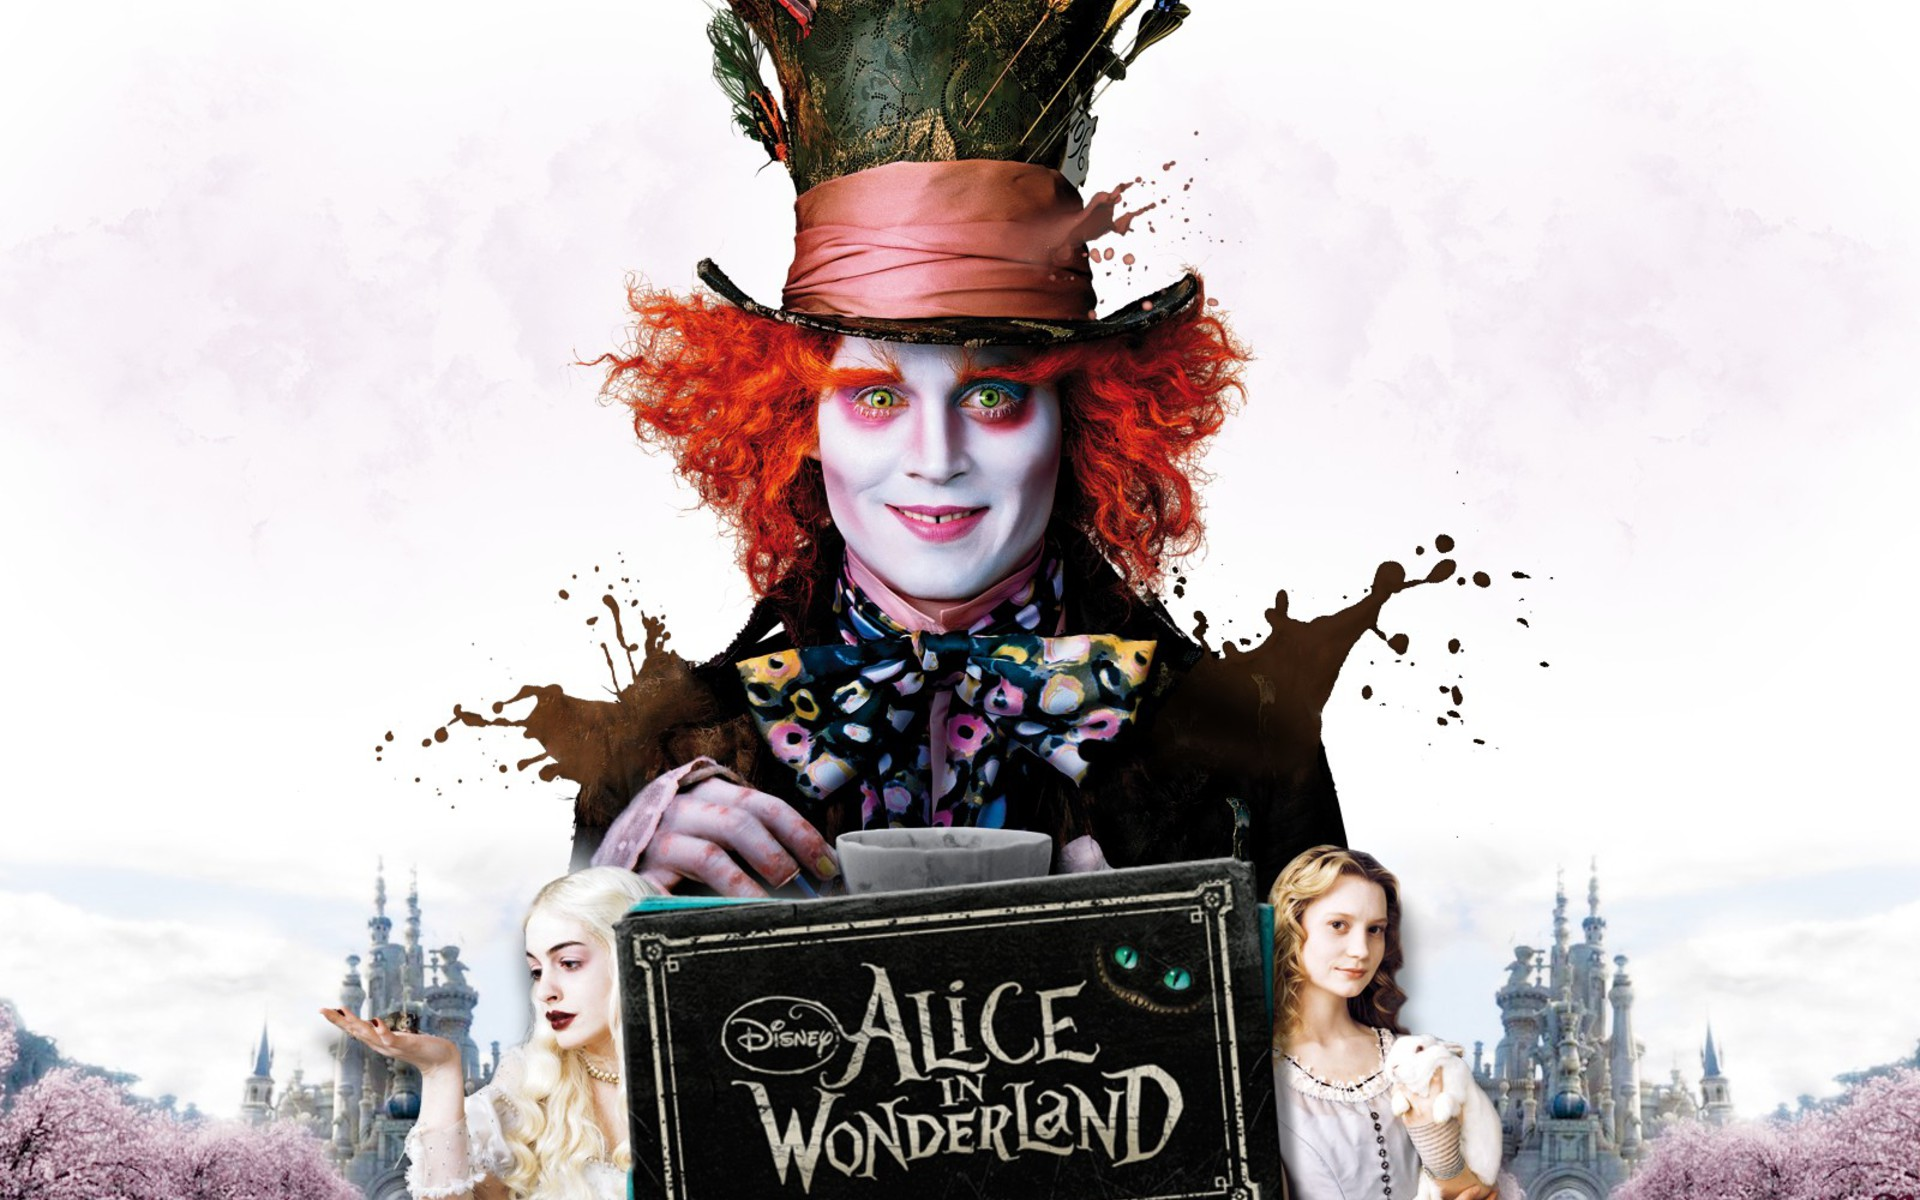 Wonderland mad hatter mia wasikowska johnny depp wallpaper ...